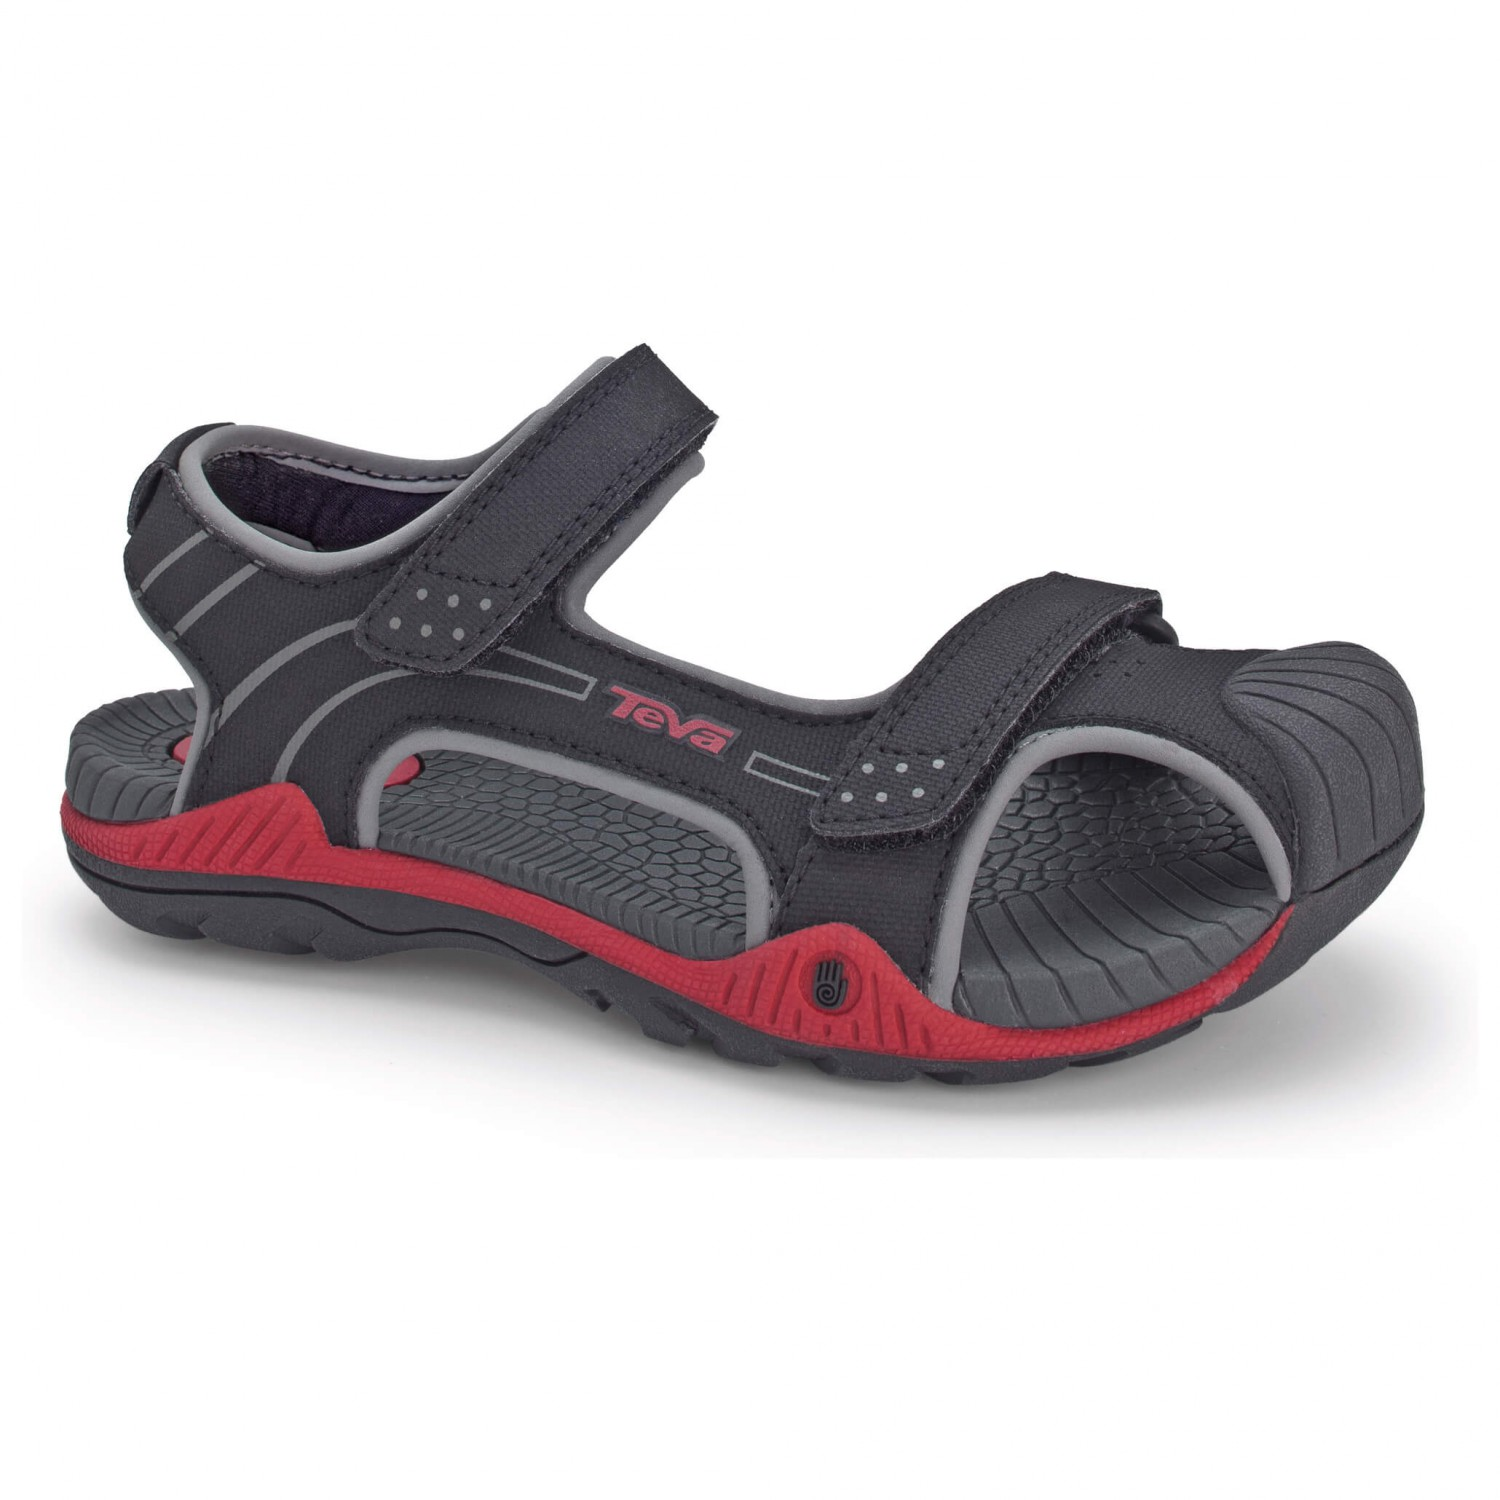 8a246db5a teva-kids-toachi-2-sandals.jpg